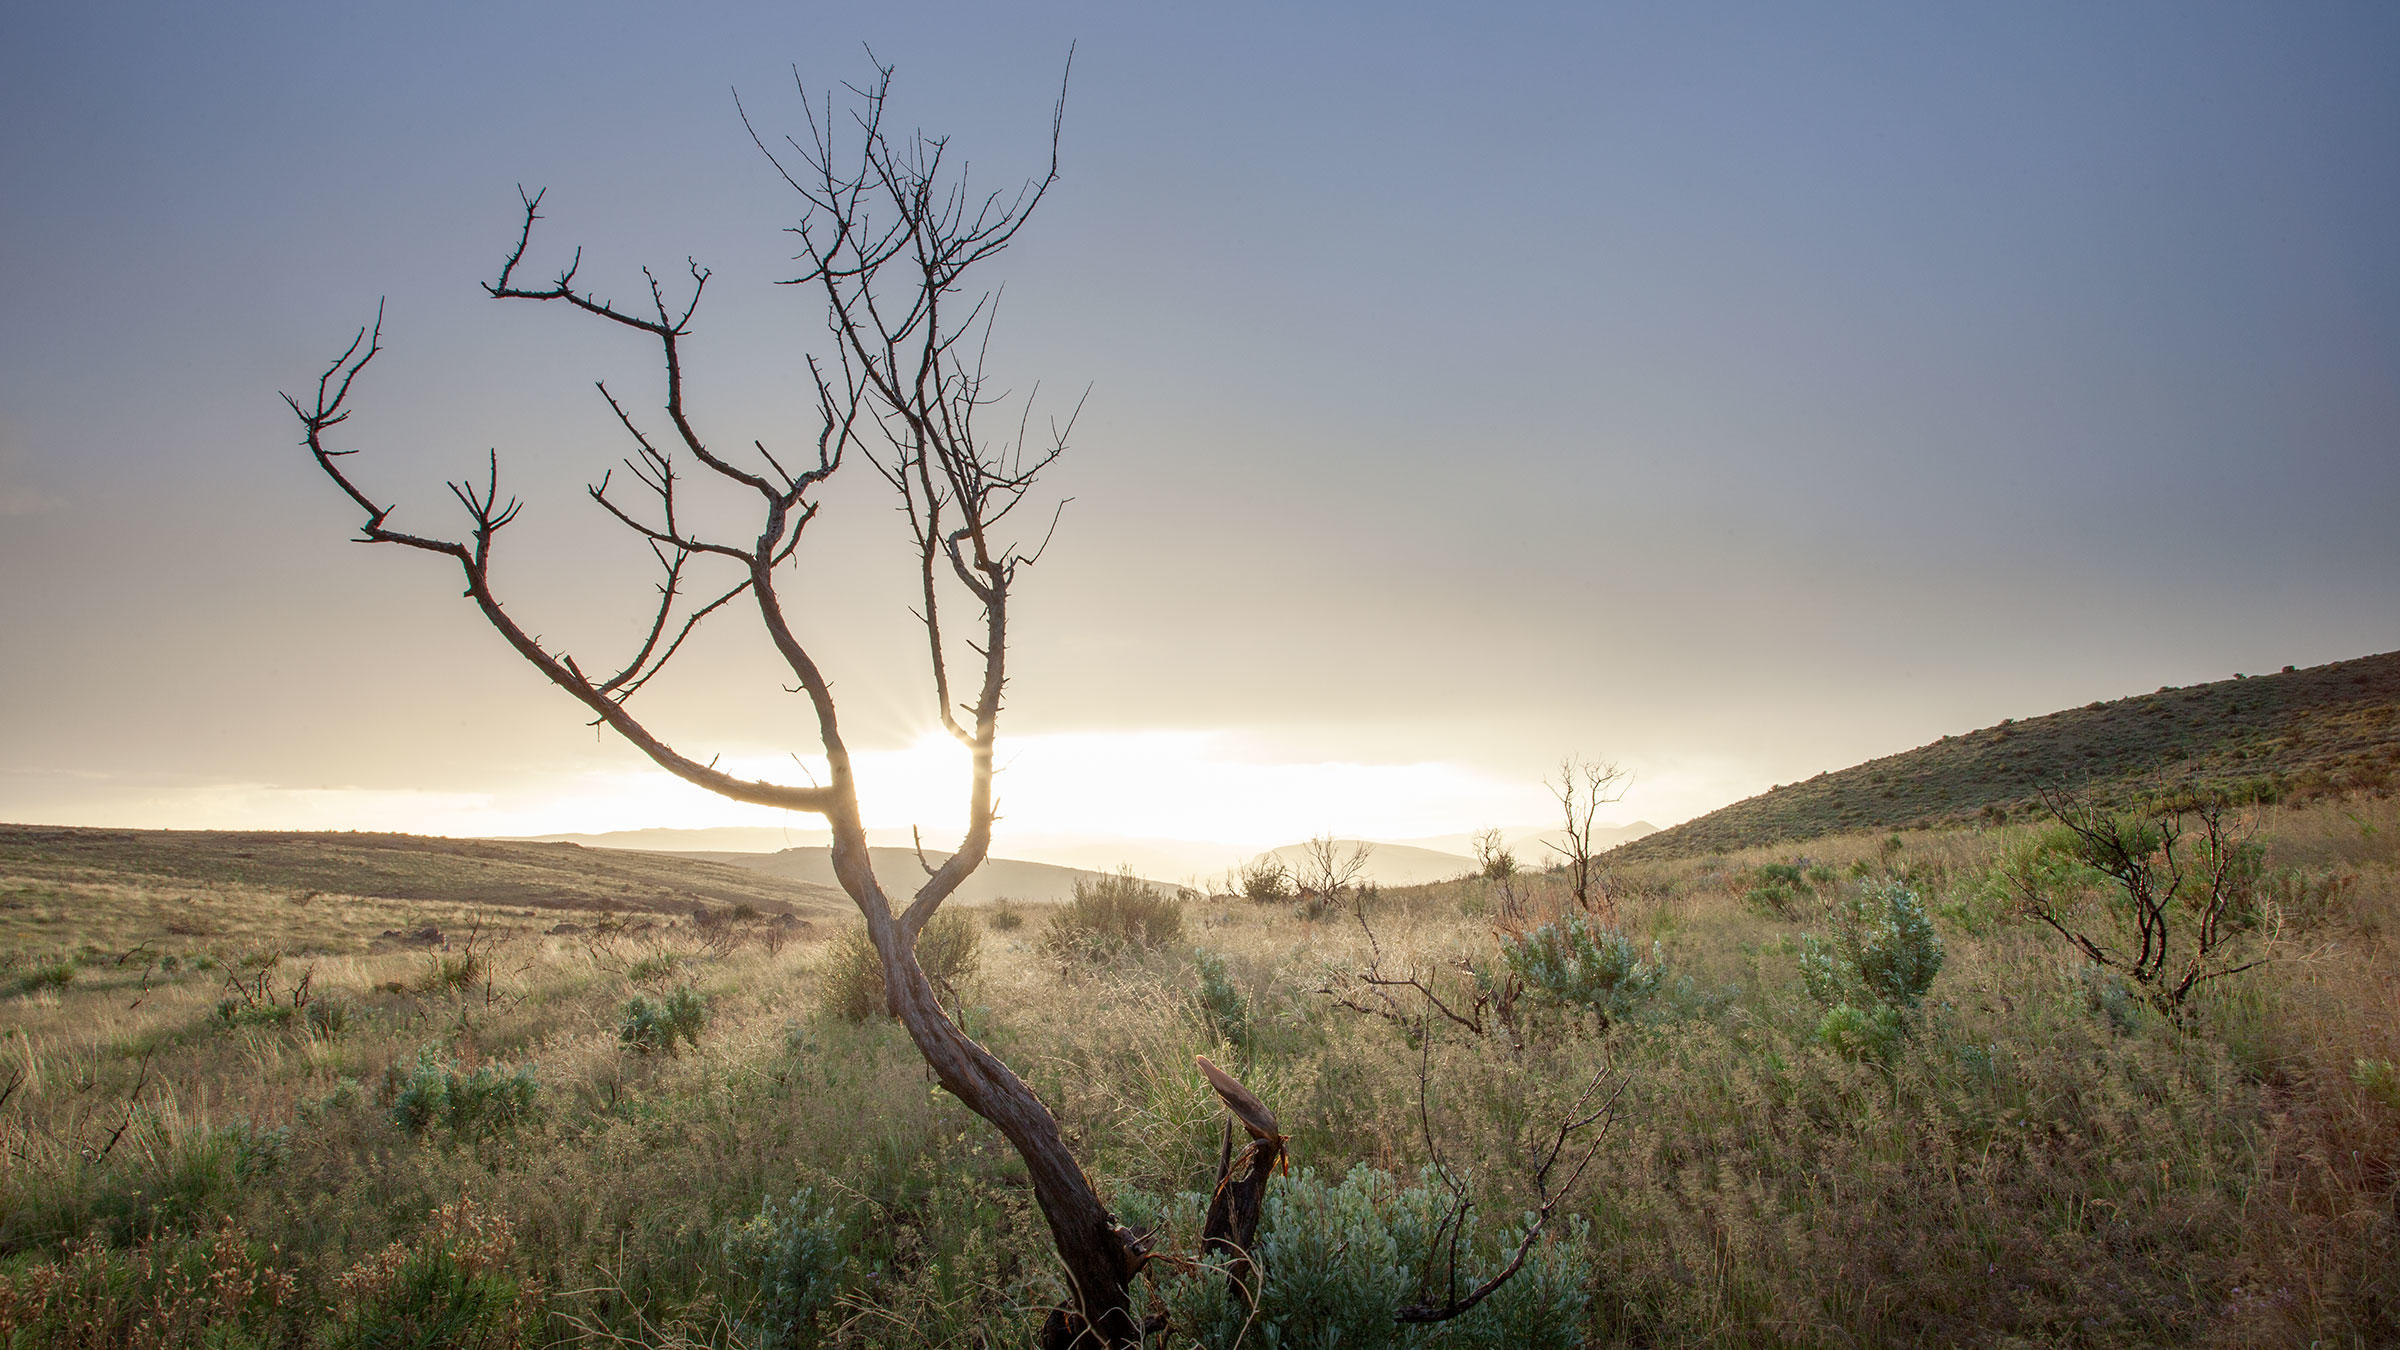 Sagebrush burned by a fire in Idaho.